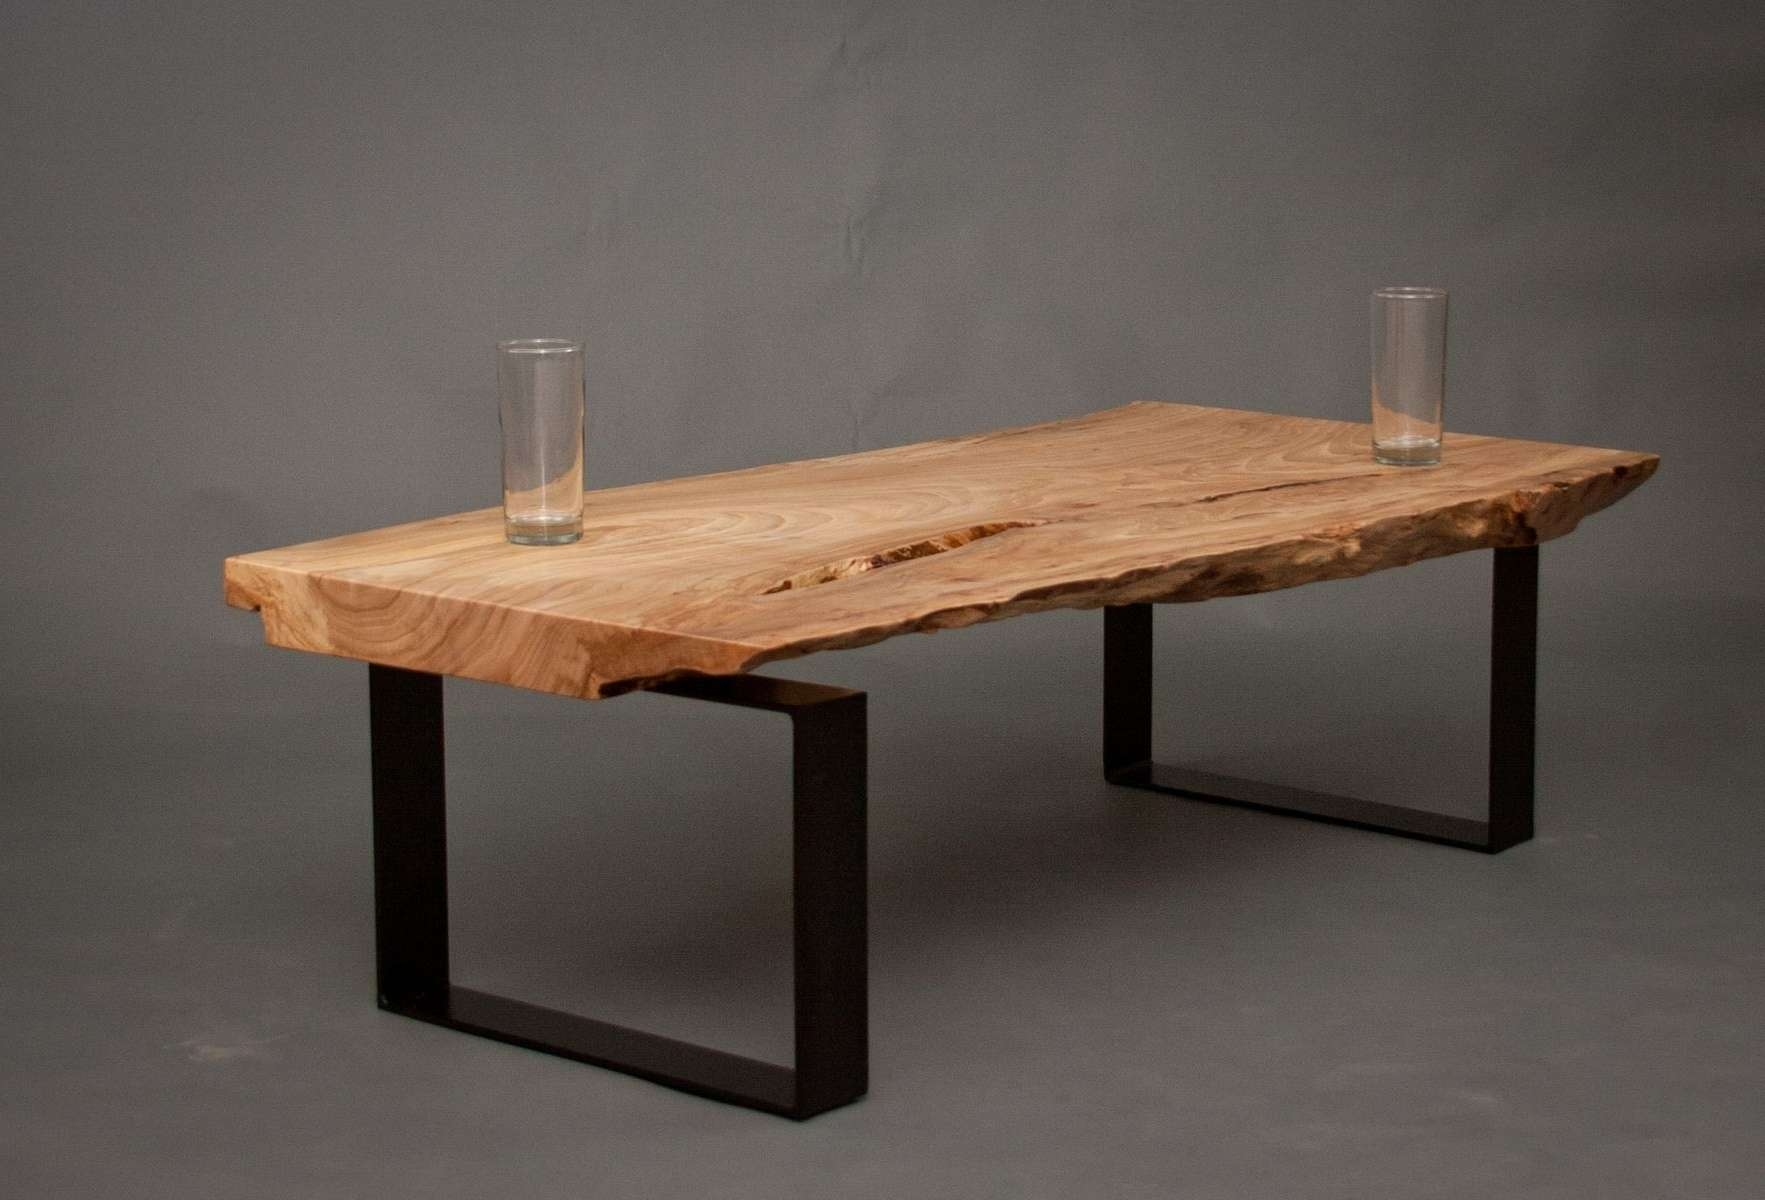 Things To Know About Reclaimed Wood Coffee Tables – Chinese Pertaining To Latest Unusual Wooden Coffee Tables (View 16 of 20)